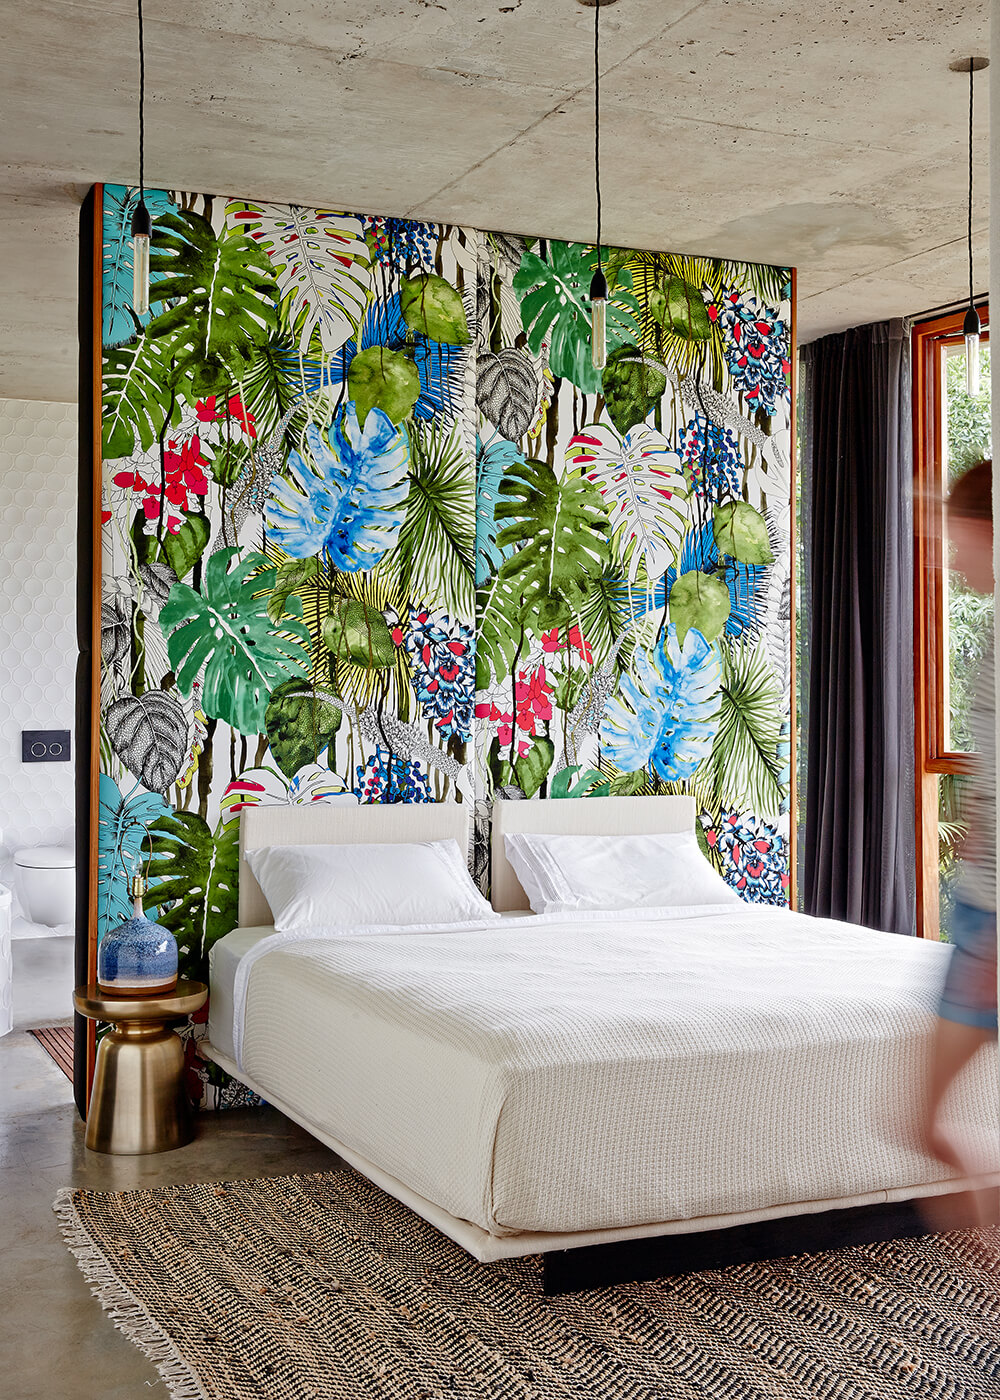 The primary bedroom sets its bed against a bold floral print feature wall, bursting with color in the neutral toned space.